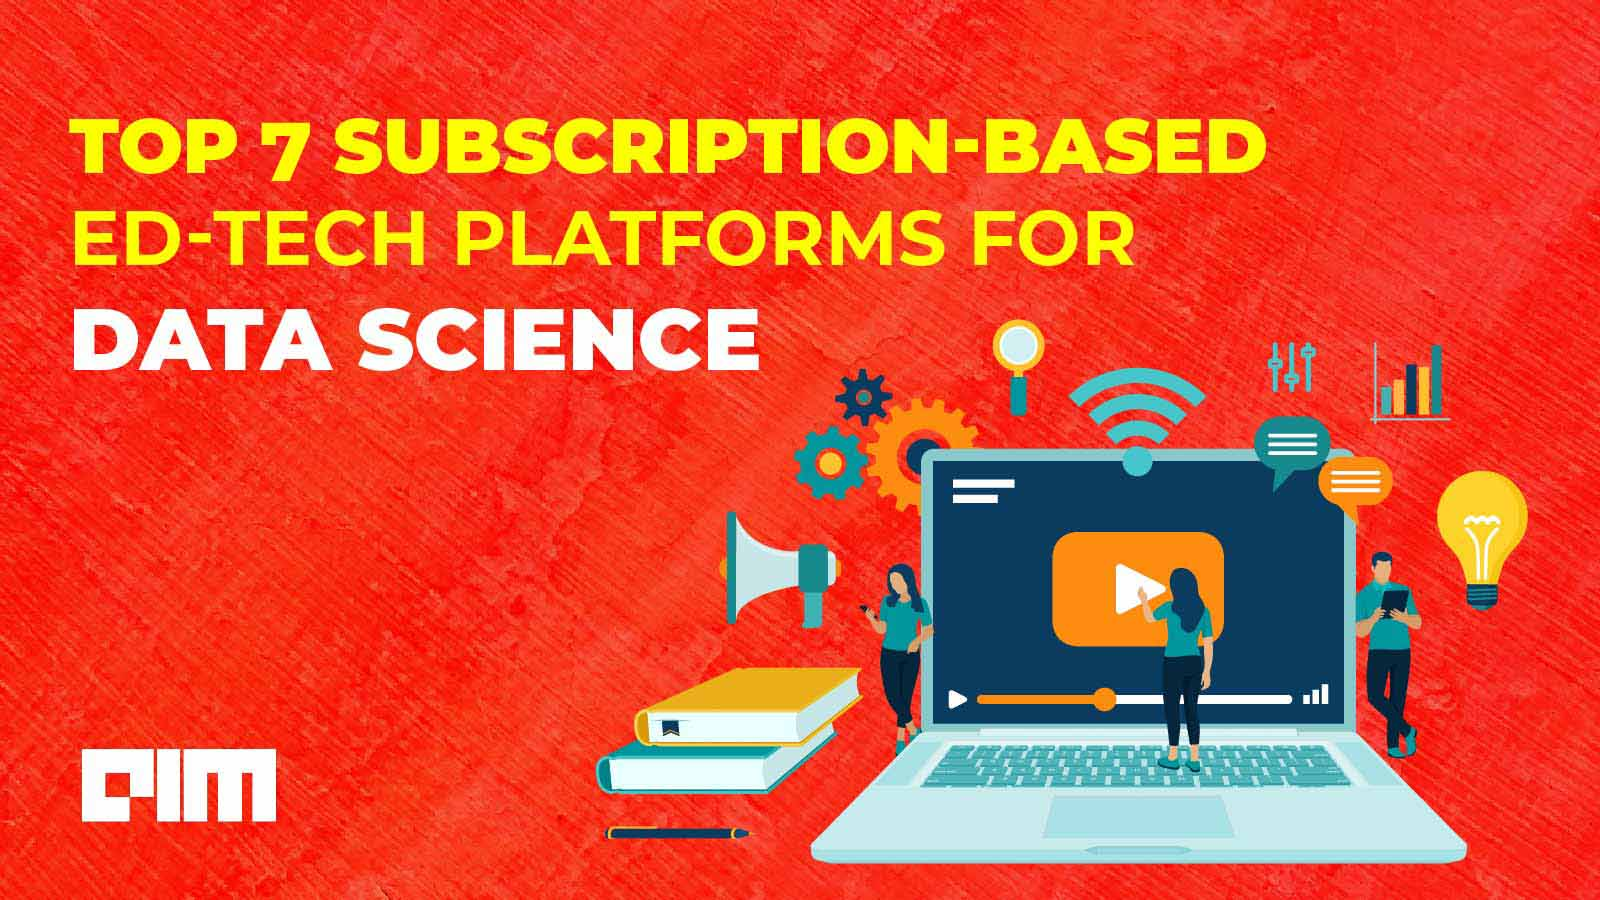 Top 7 Subscription-based Ed-tech Platforms For Data Science